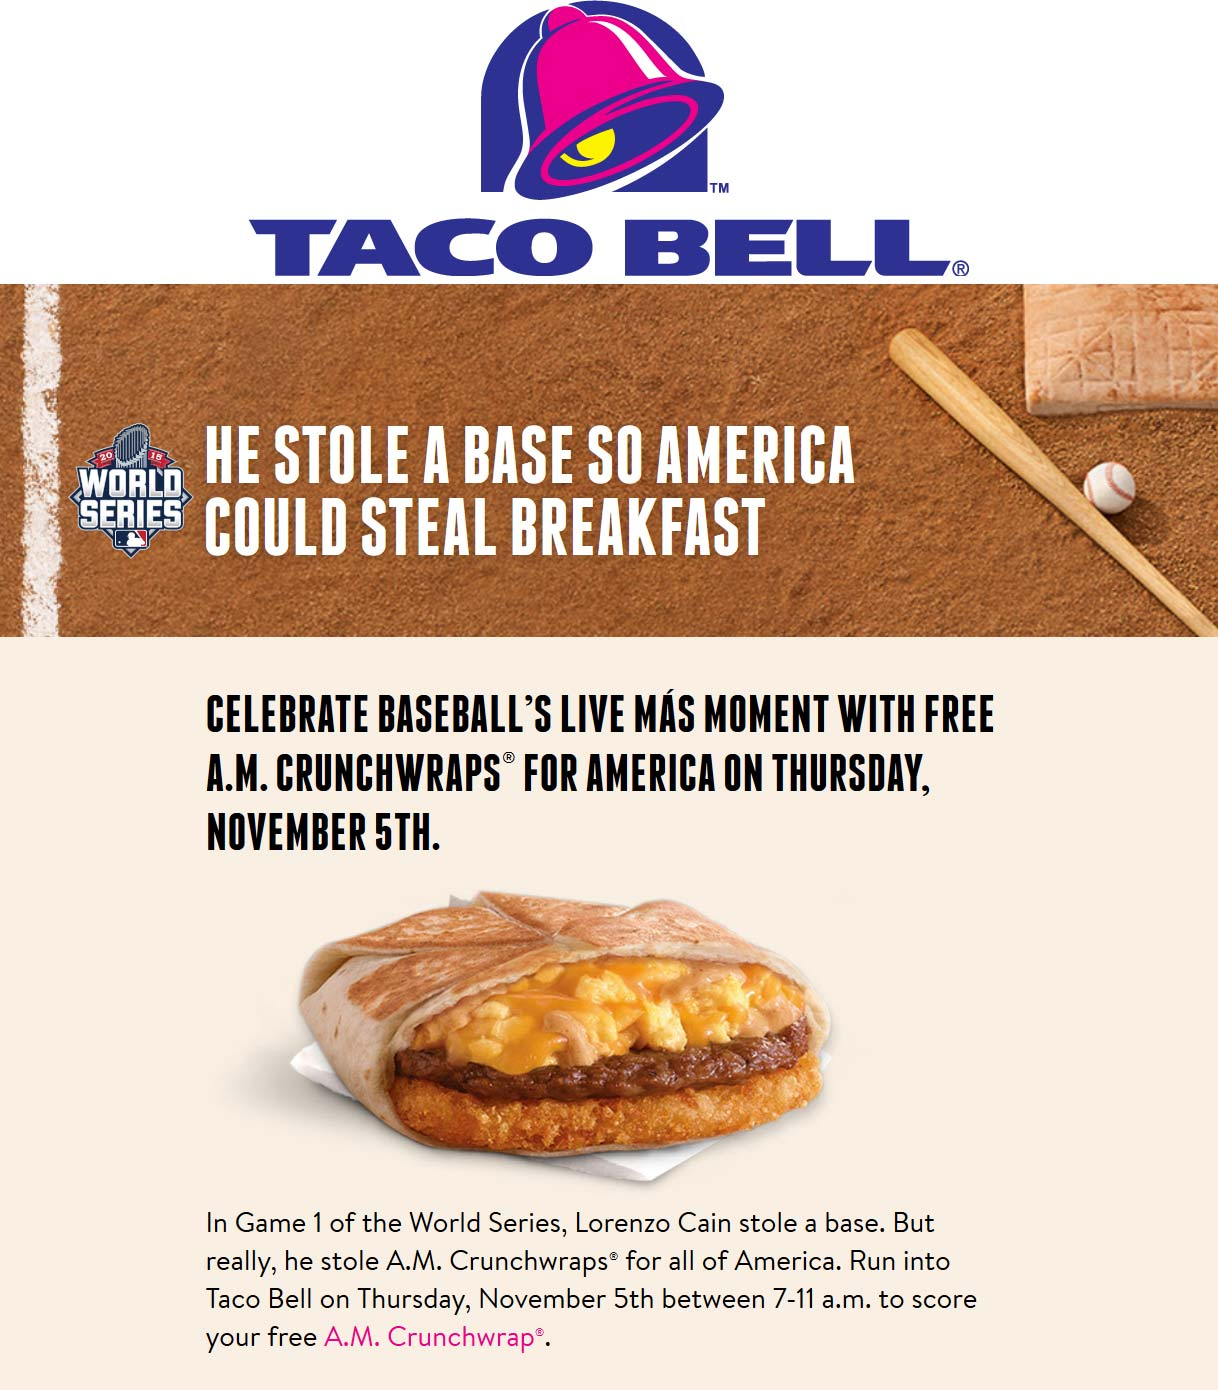 Taco Bell Coupon December 2018 A.M. crunchwrap free the 5th at Taco Bell